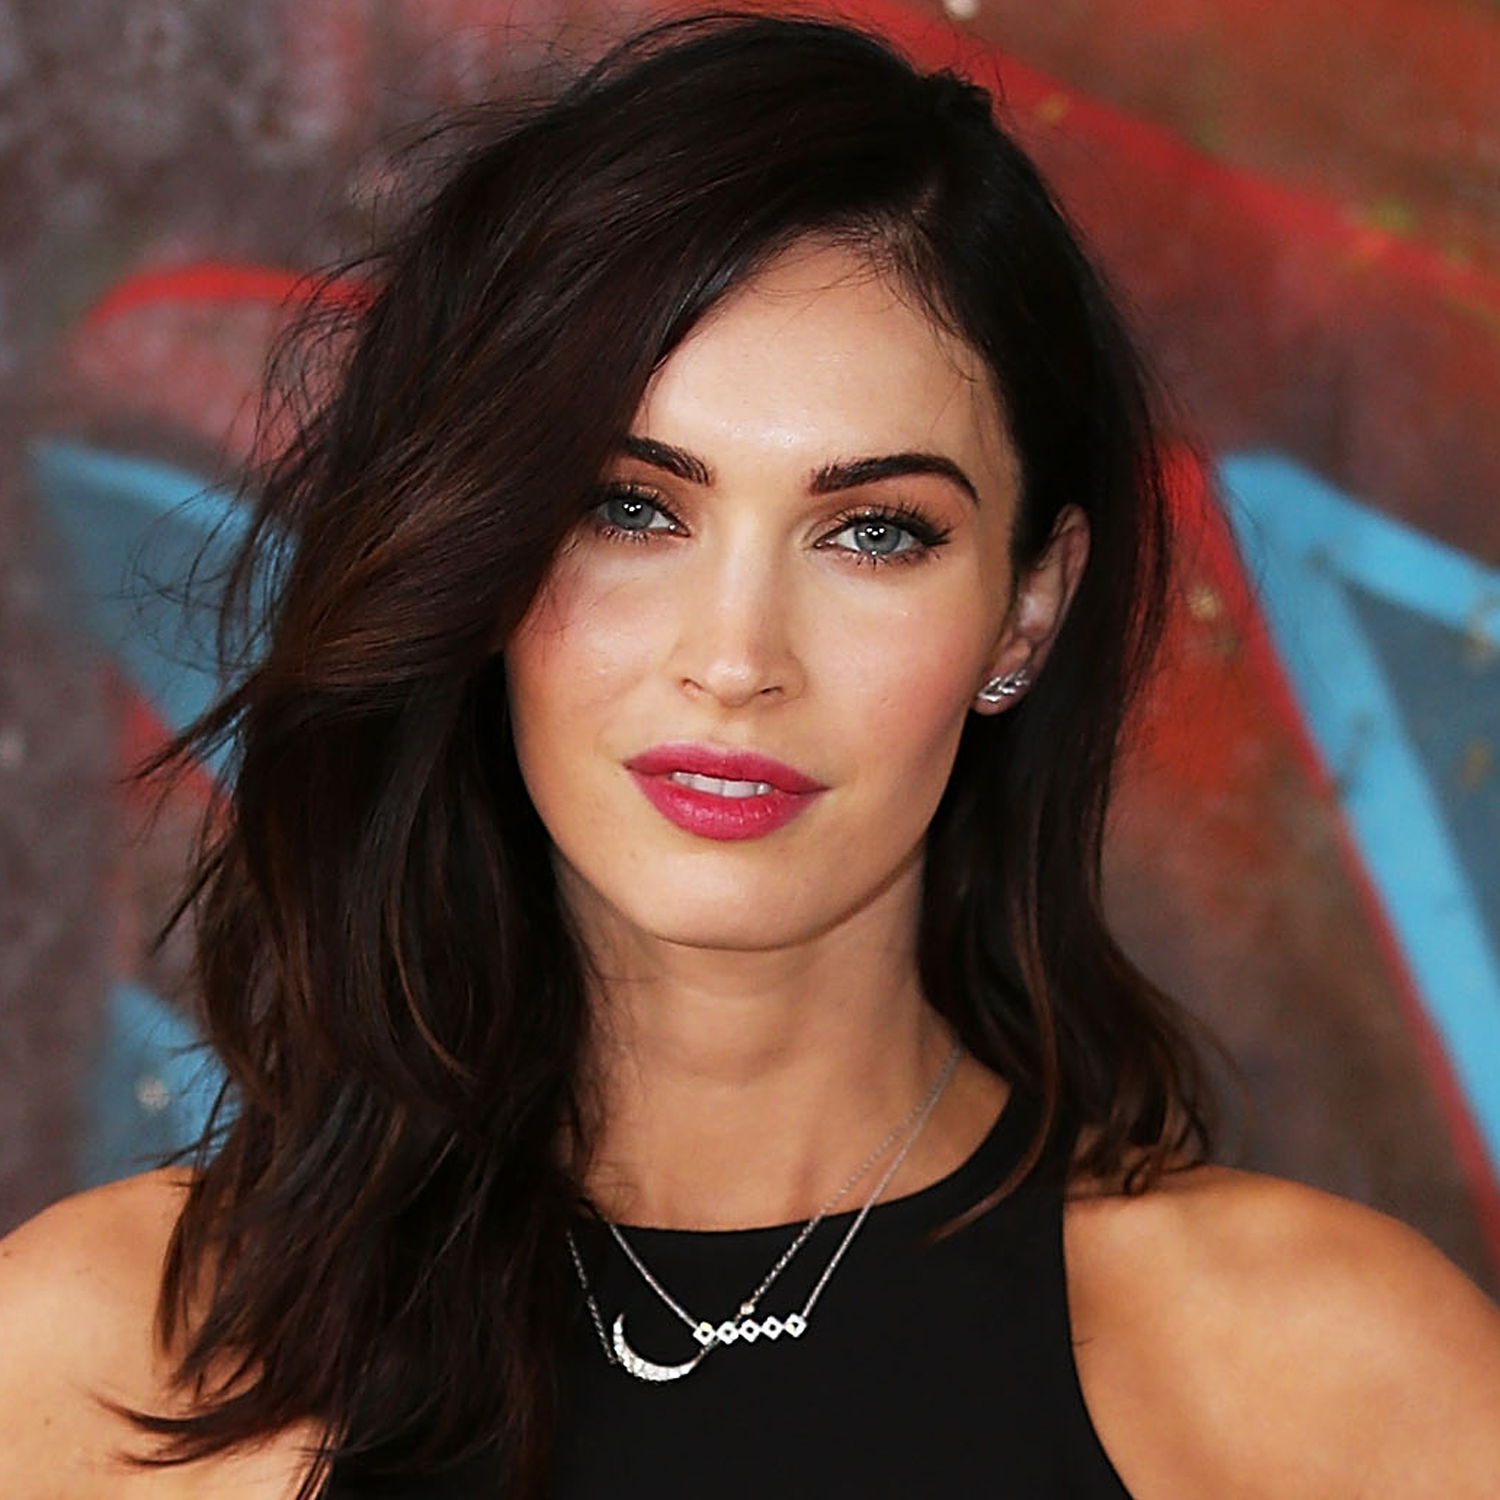 Megan Fox Straight Hairstyle Hairstyles For Women